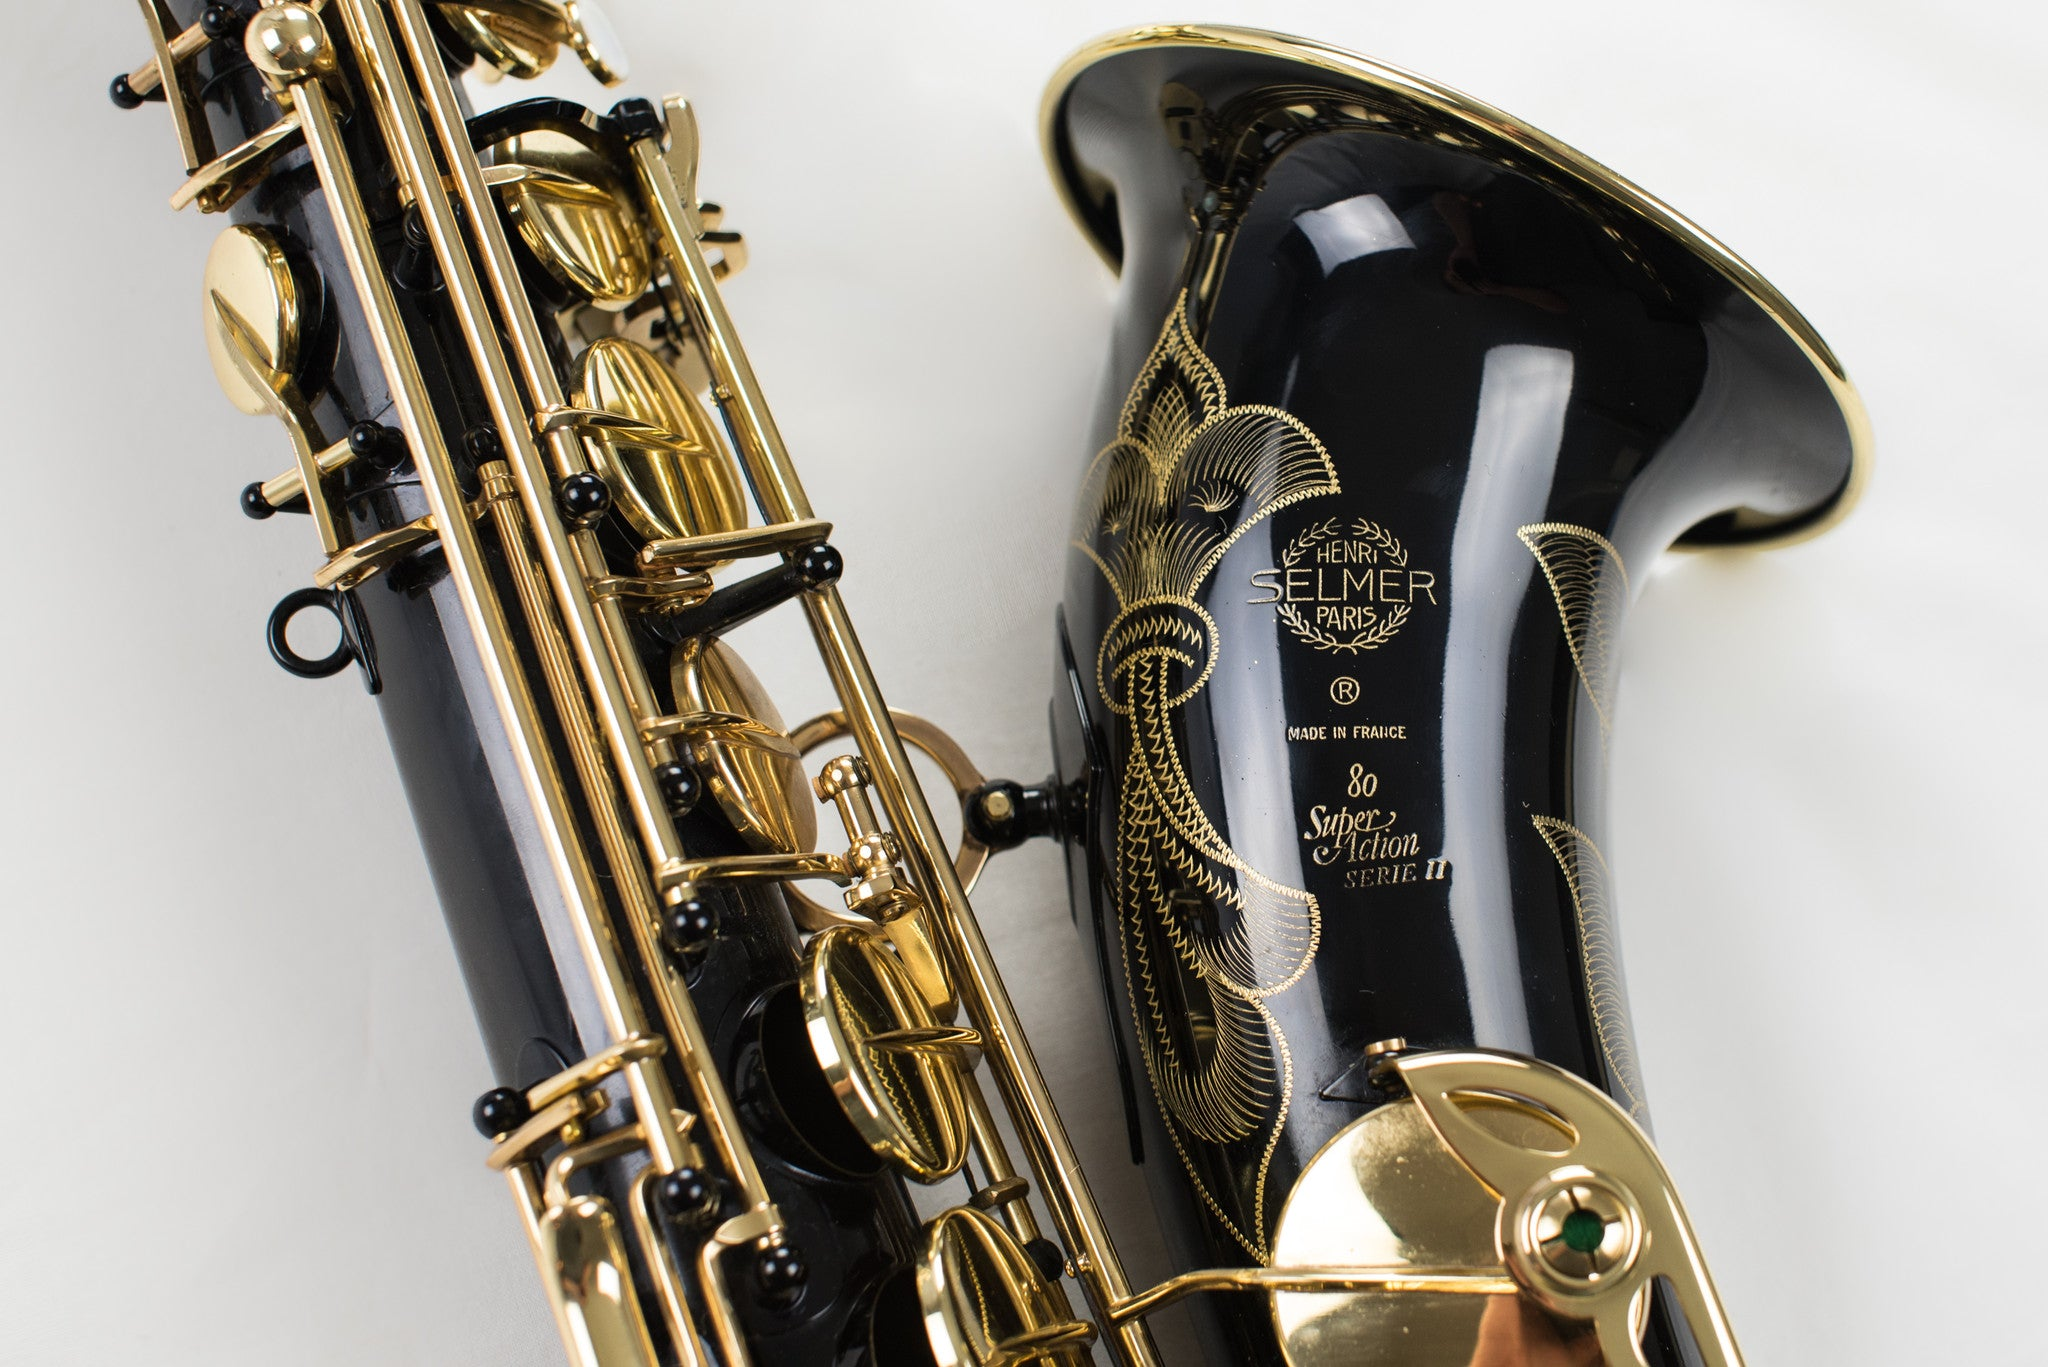 Selmer Super Action Series II Tenor Saxophone Black Lacquer